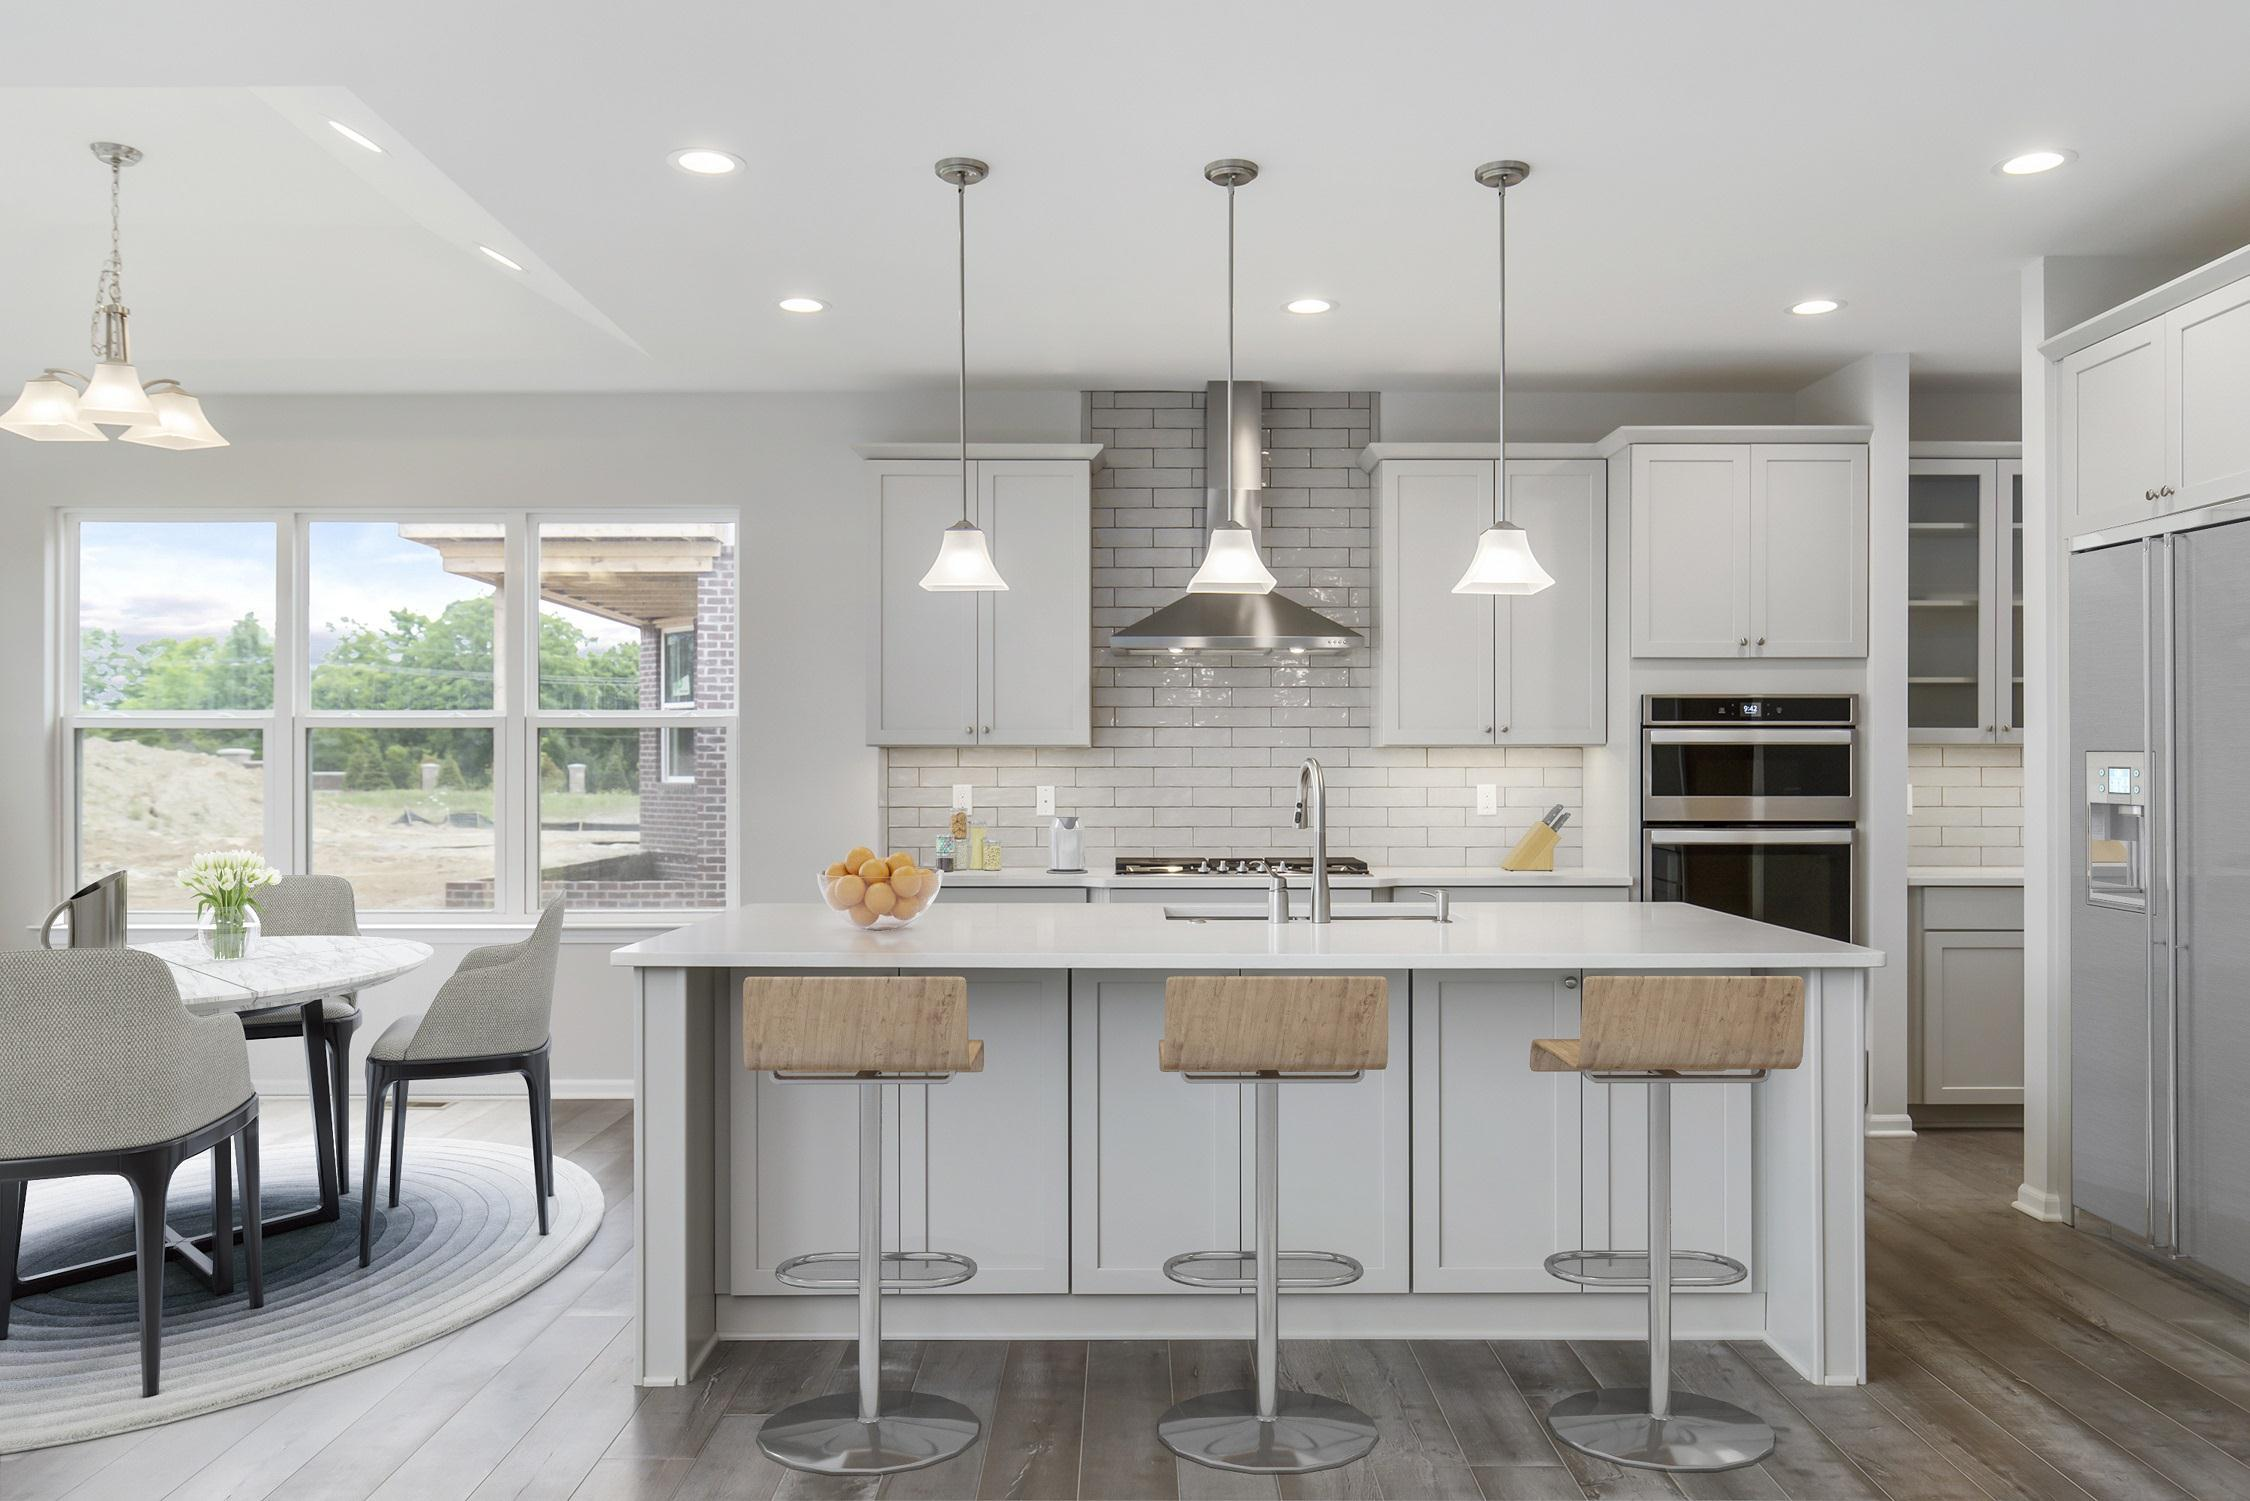 Kitchen featured in the Frankfort By Singh Homes in Detroit, MI